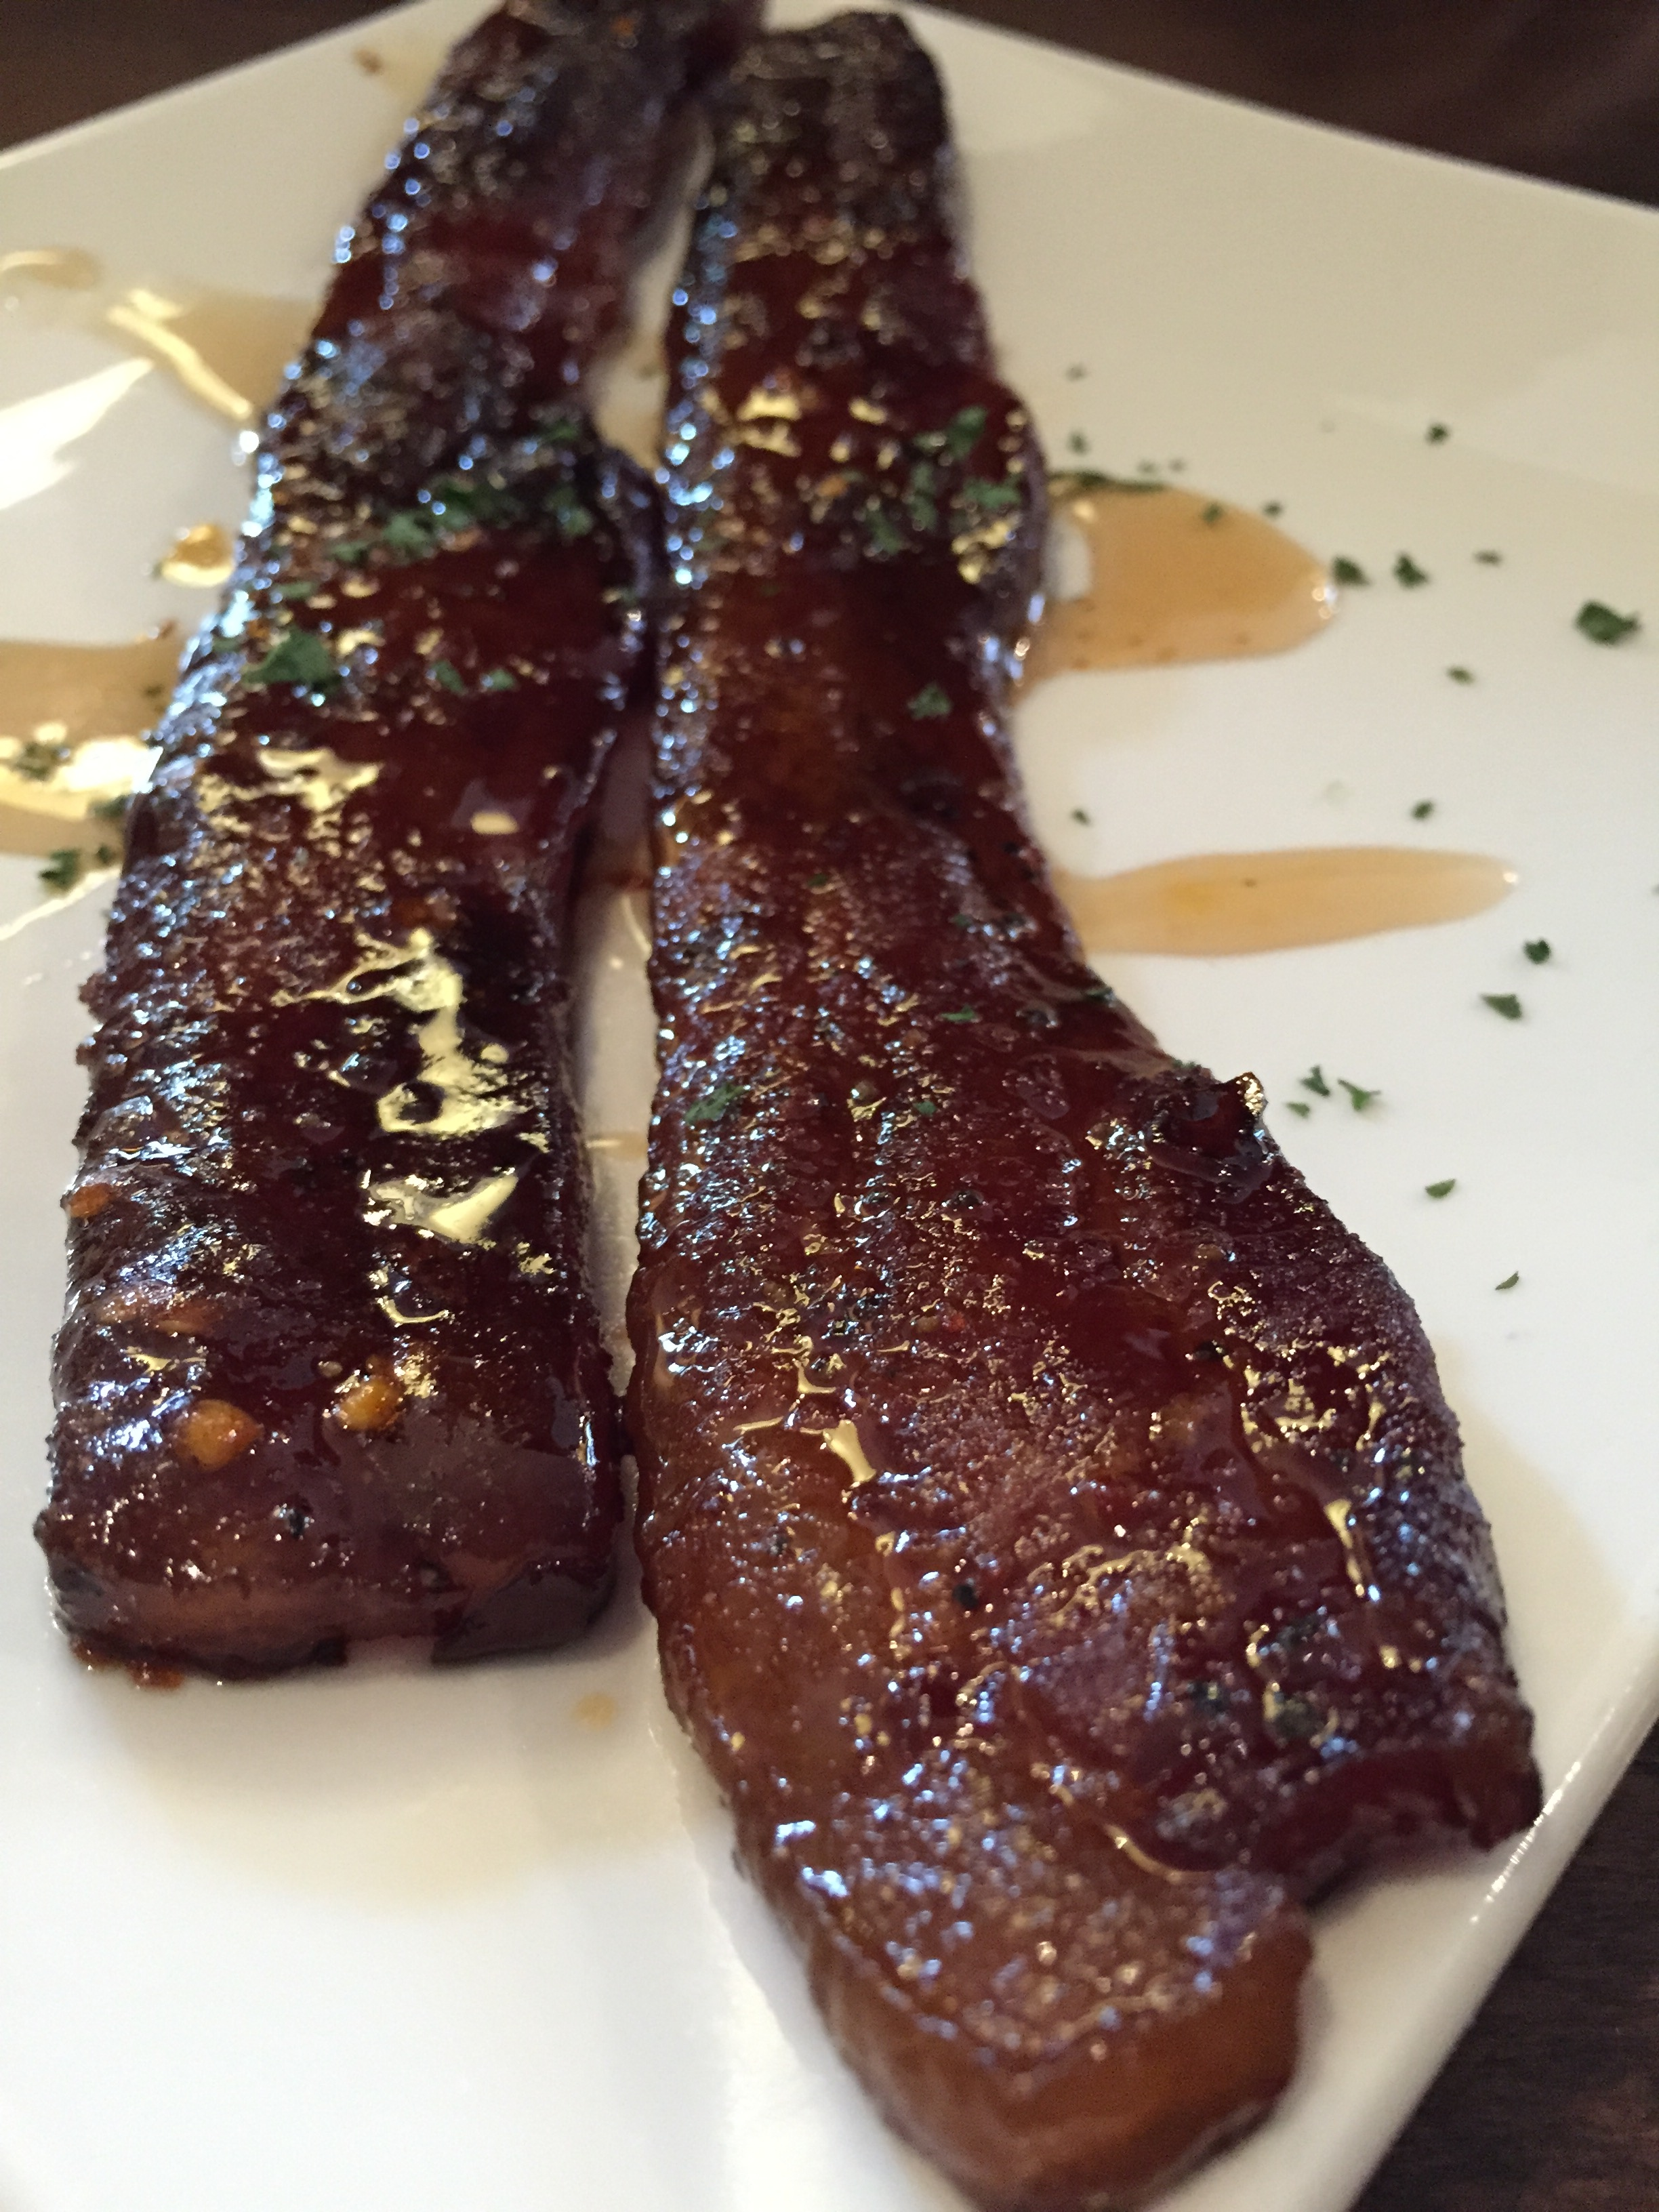 Millionaire's Bacon from Sweet Maple